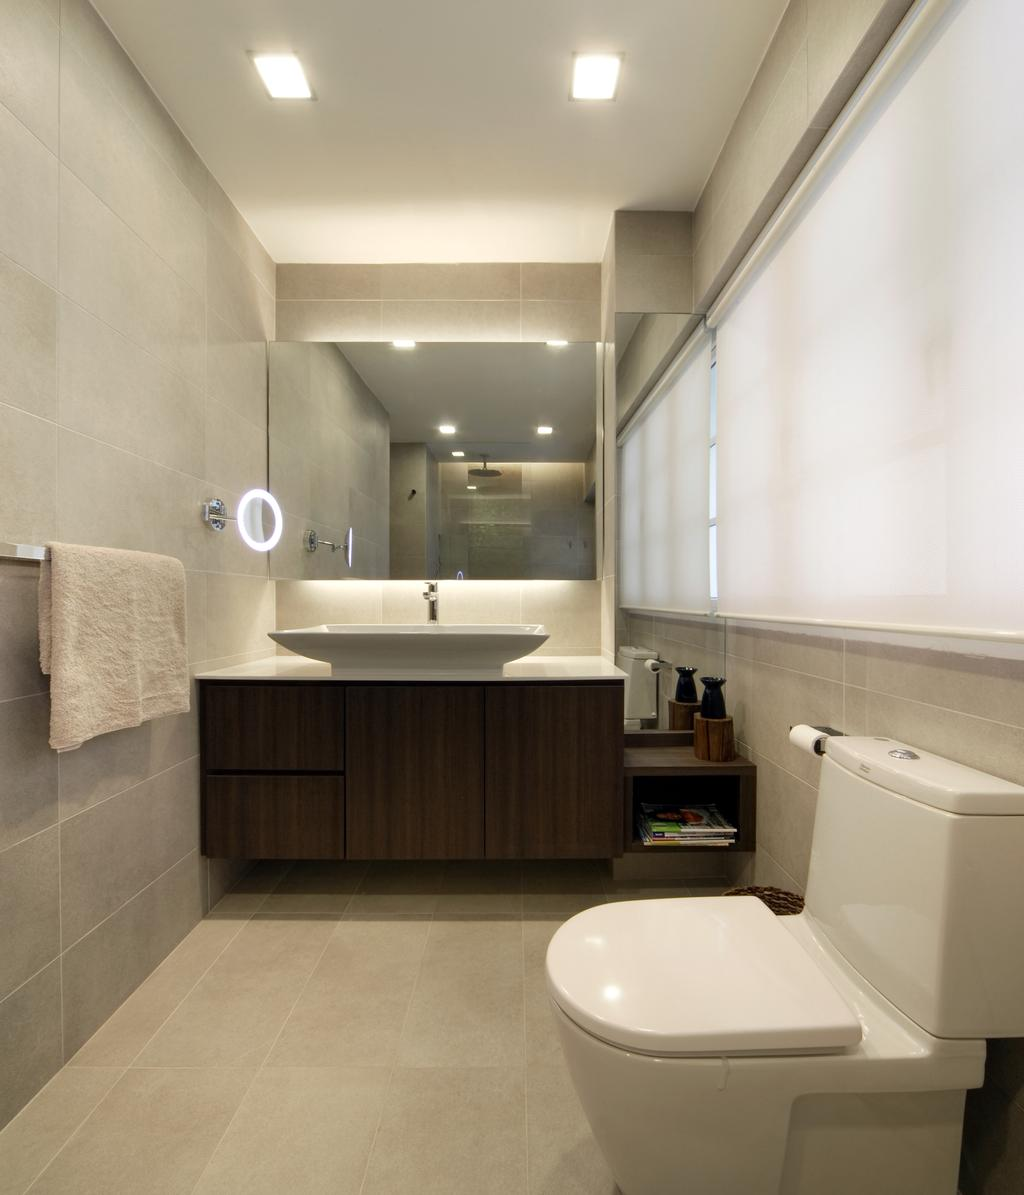 Contemporary, Landed, Bathroom, Chuan Place, Interior Designer, Design by Fifteen Pte Ltd, Modern Contemporary Bathroom, Ceramic Floor, Wooden Bathroom Cabinet, White Sink Countertop, Protruding Sink, Recessed Lights, Hidden Interior Lighting, Toilet, Indoors, Interior Design, Room